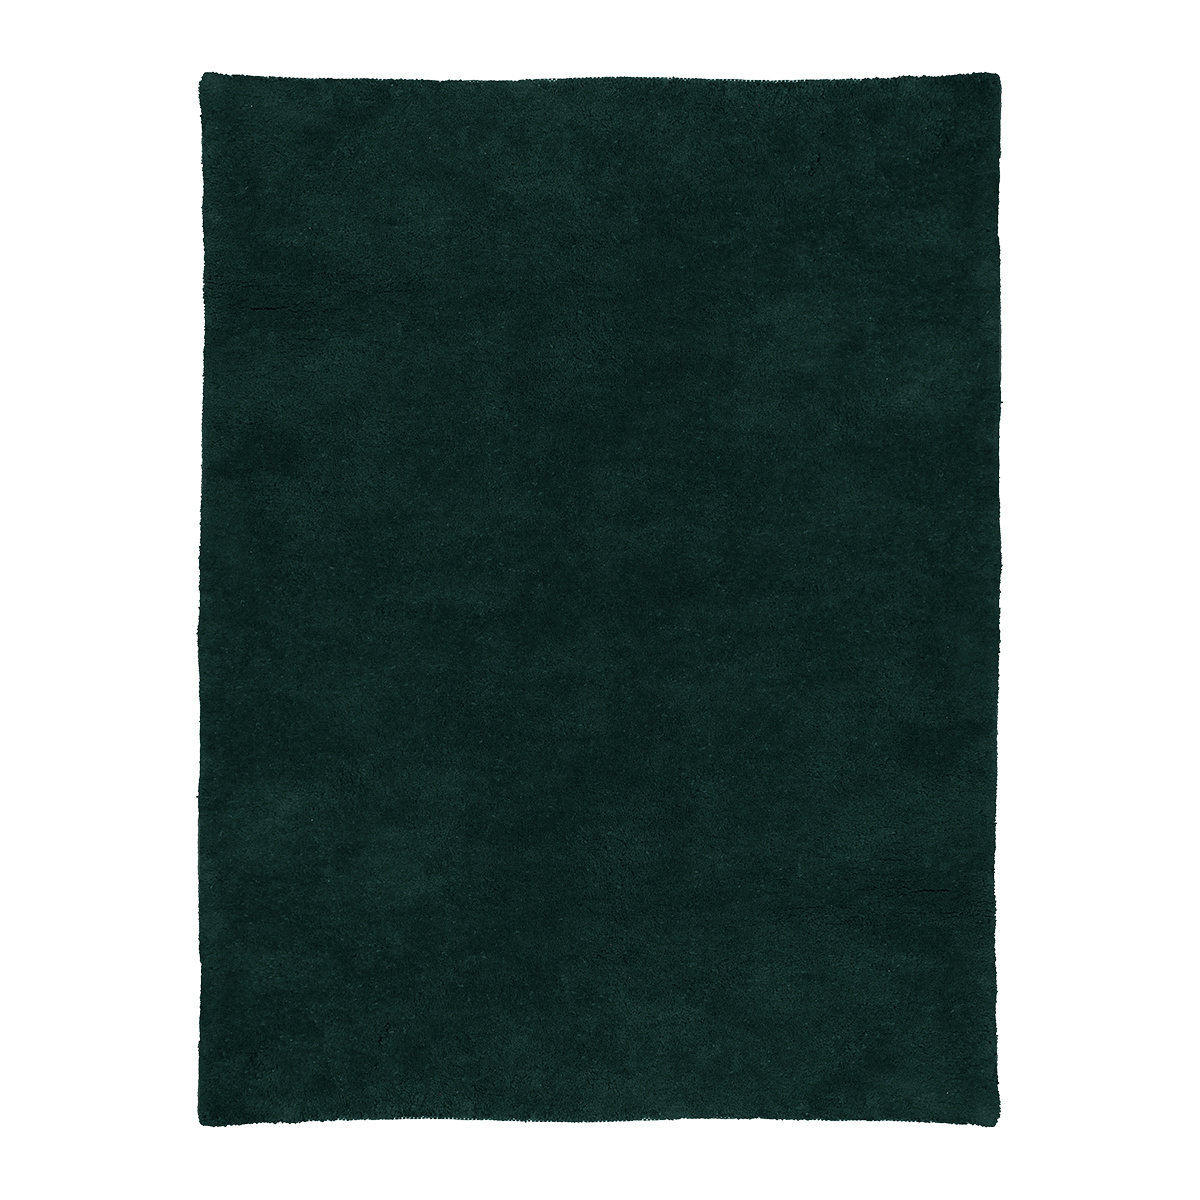 Velluto Rug, Green 200 x 300